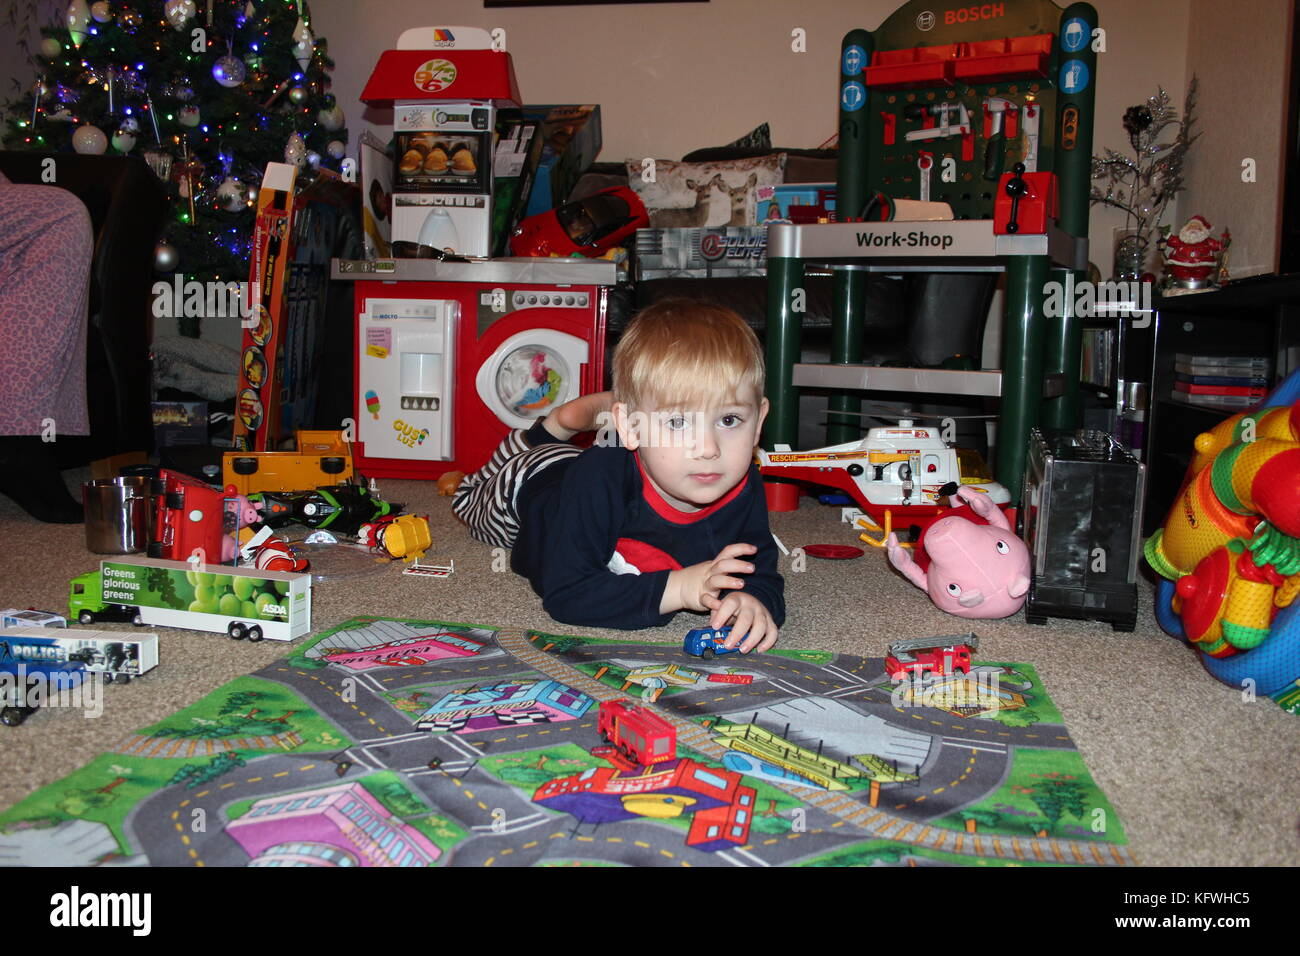 A child opening Christmas presents on Christmas morning - Stock Image